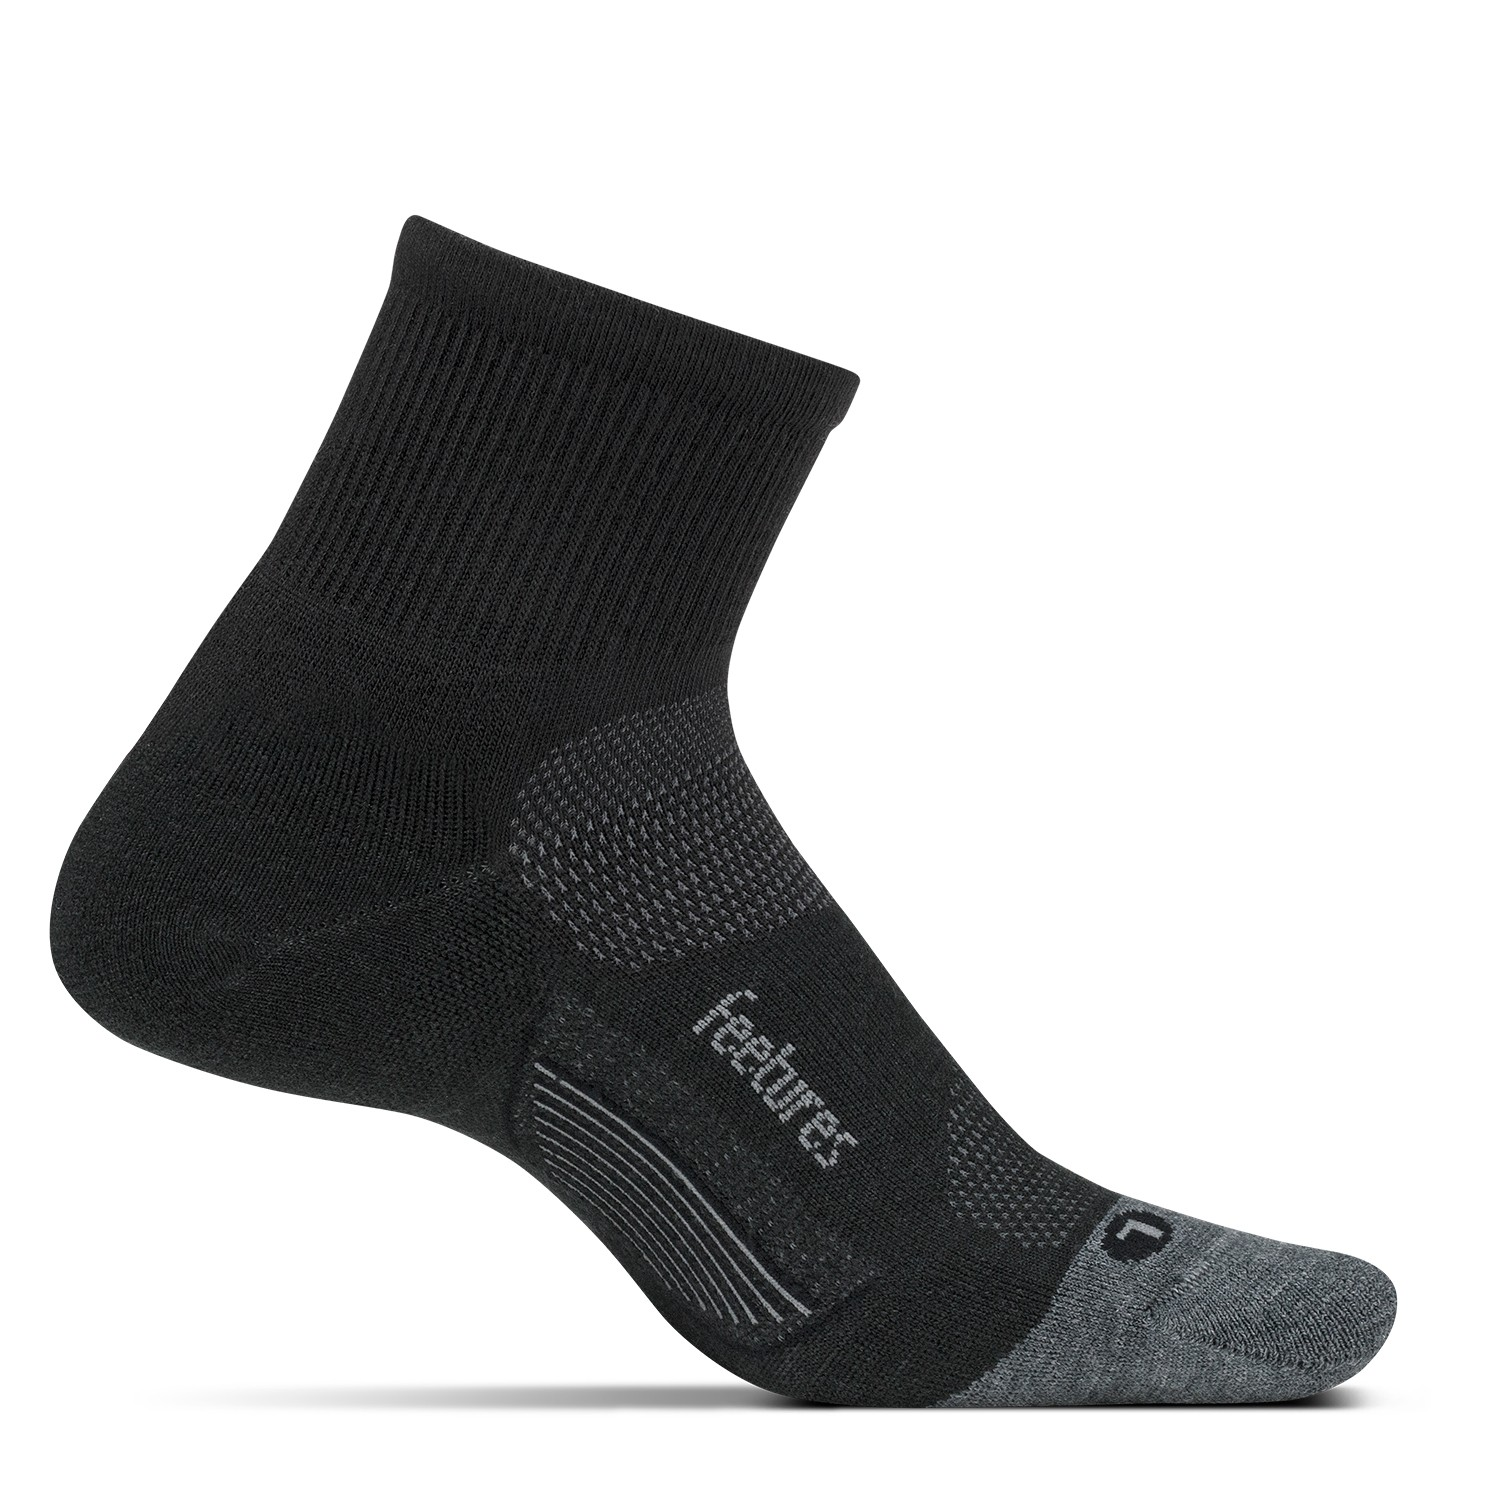 Feetures Unisex Merino 10 Cushion Qtr Sock